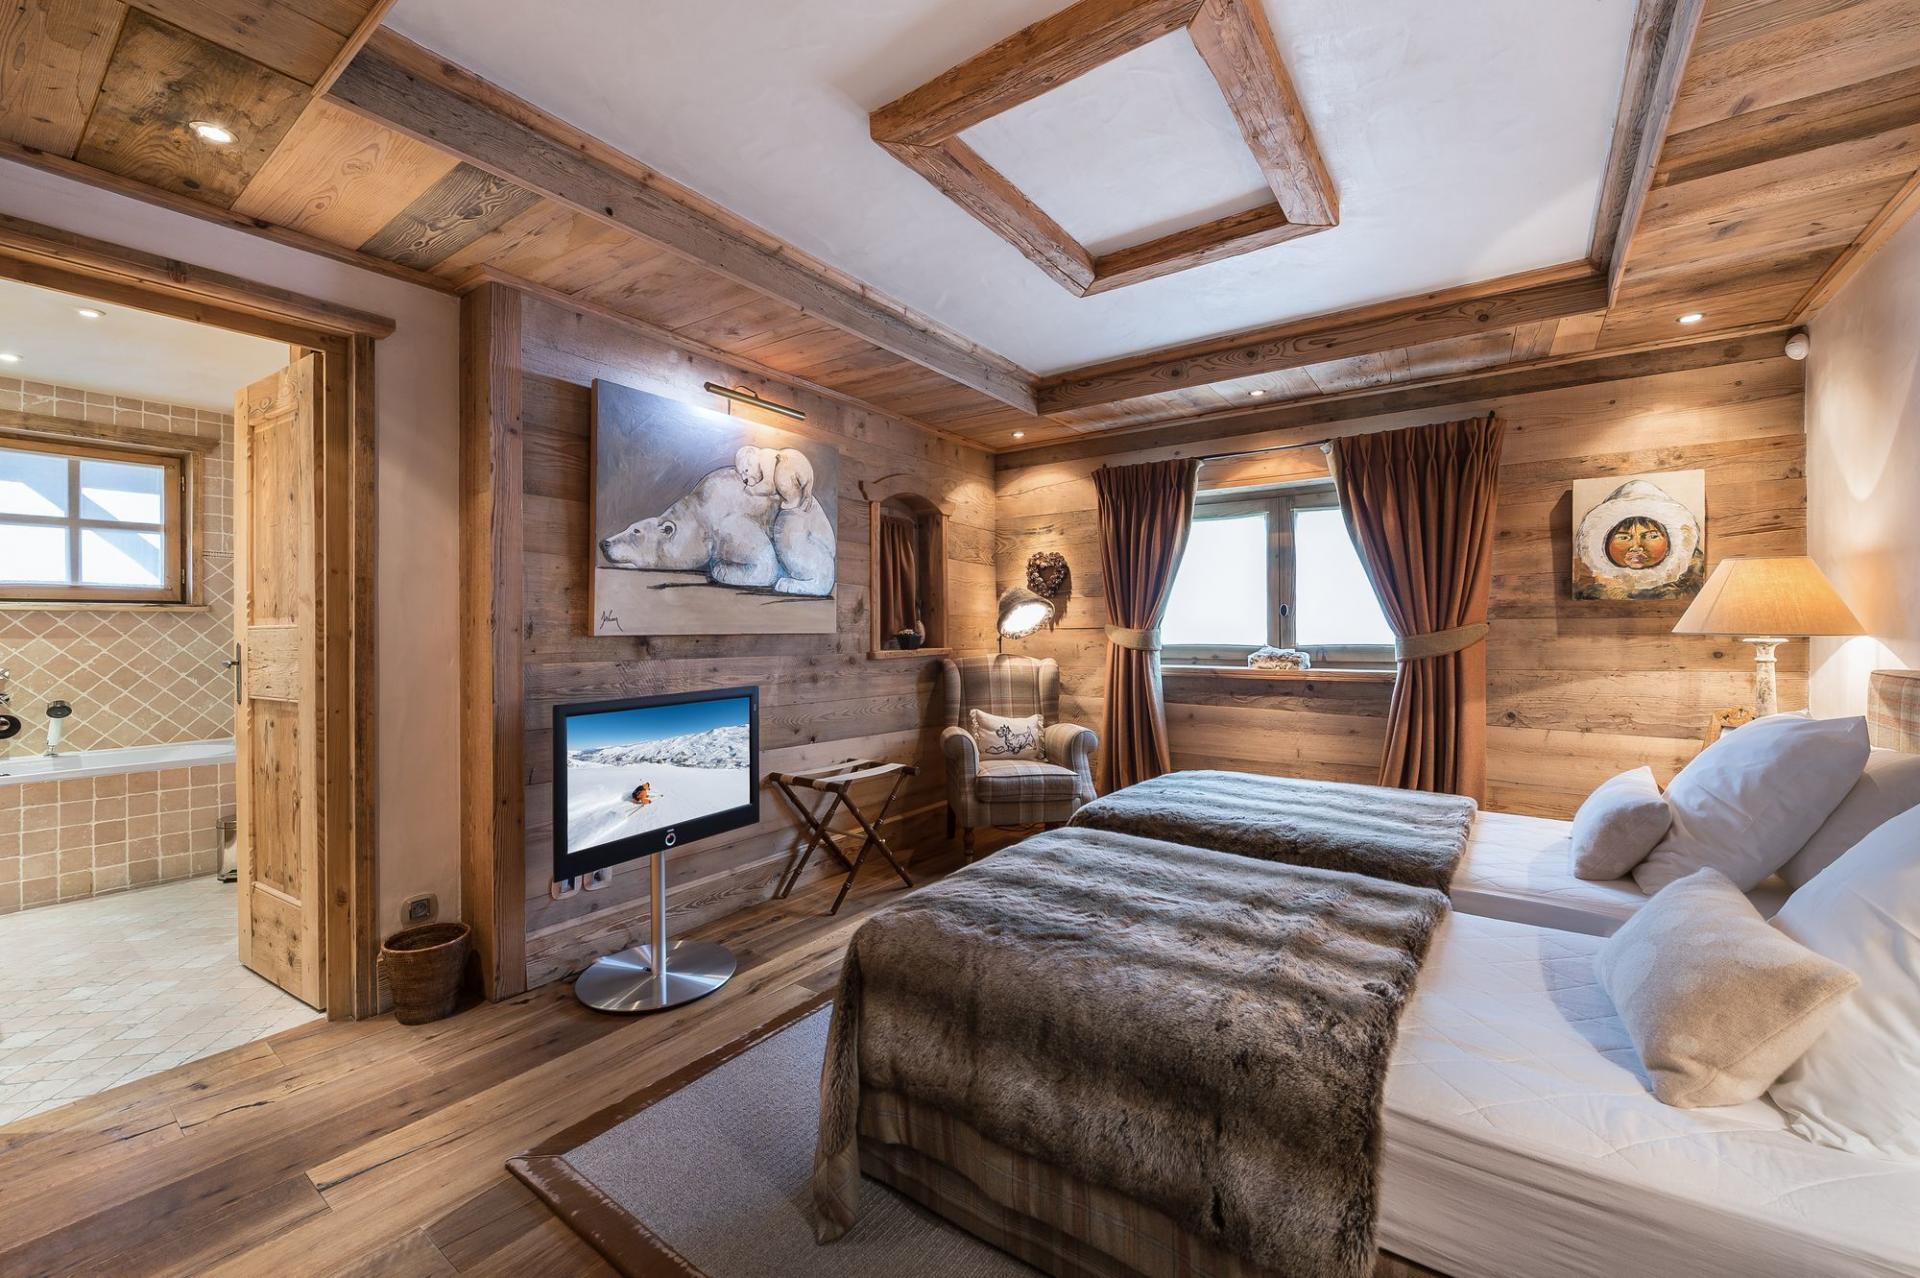 ANOTHER BEDROOM IN CHALET BELLECOTE